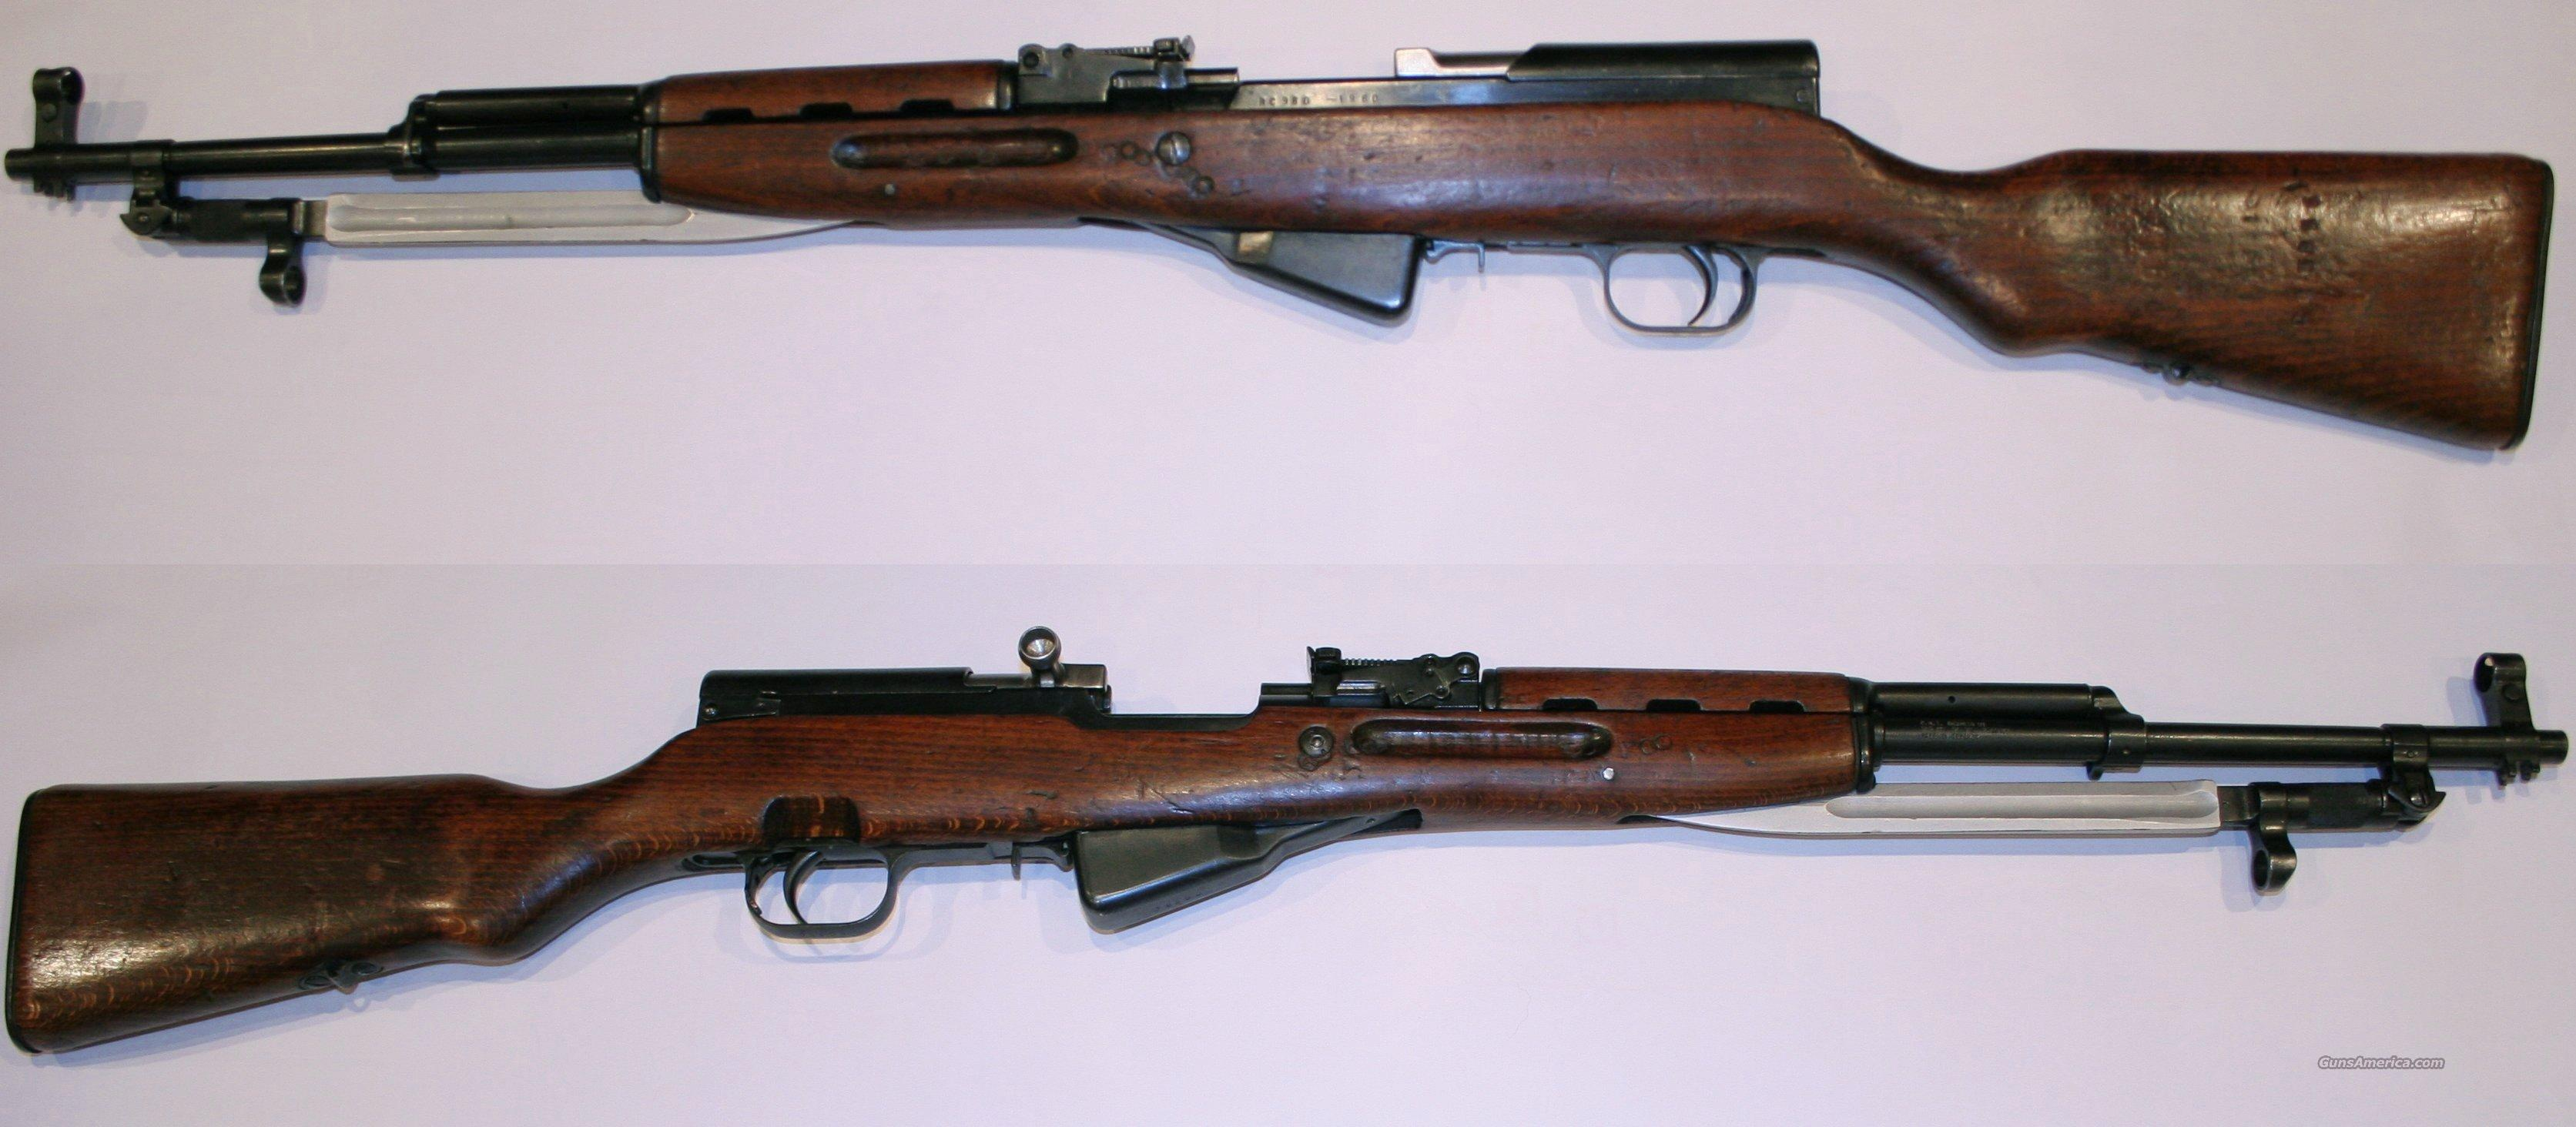 Romaina SKS VG Condition CA OK  Guns > Rifles > SKS Rifles